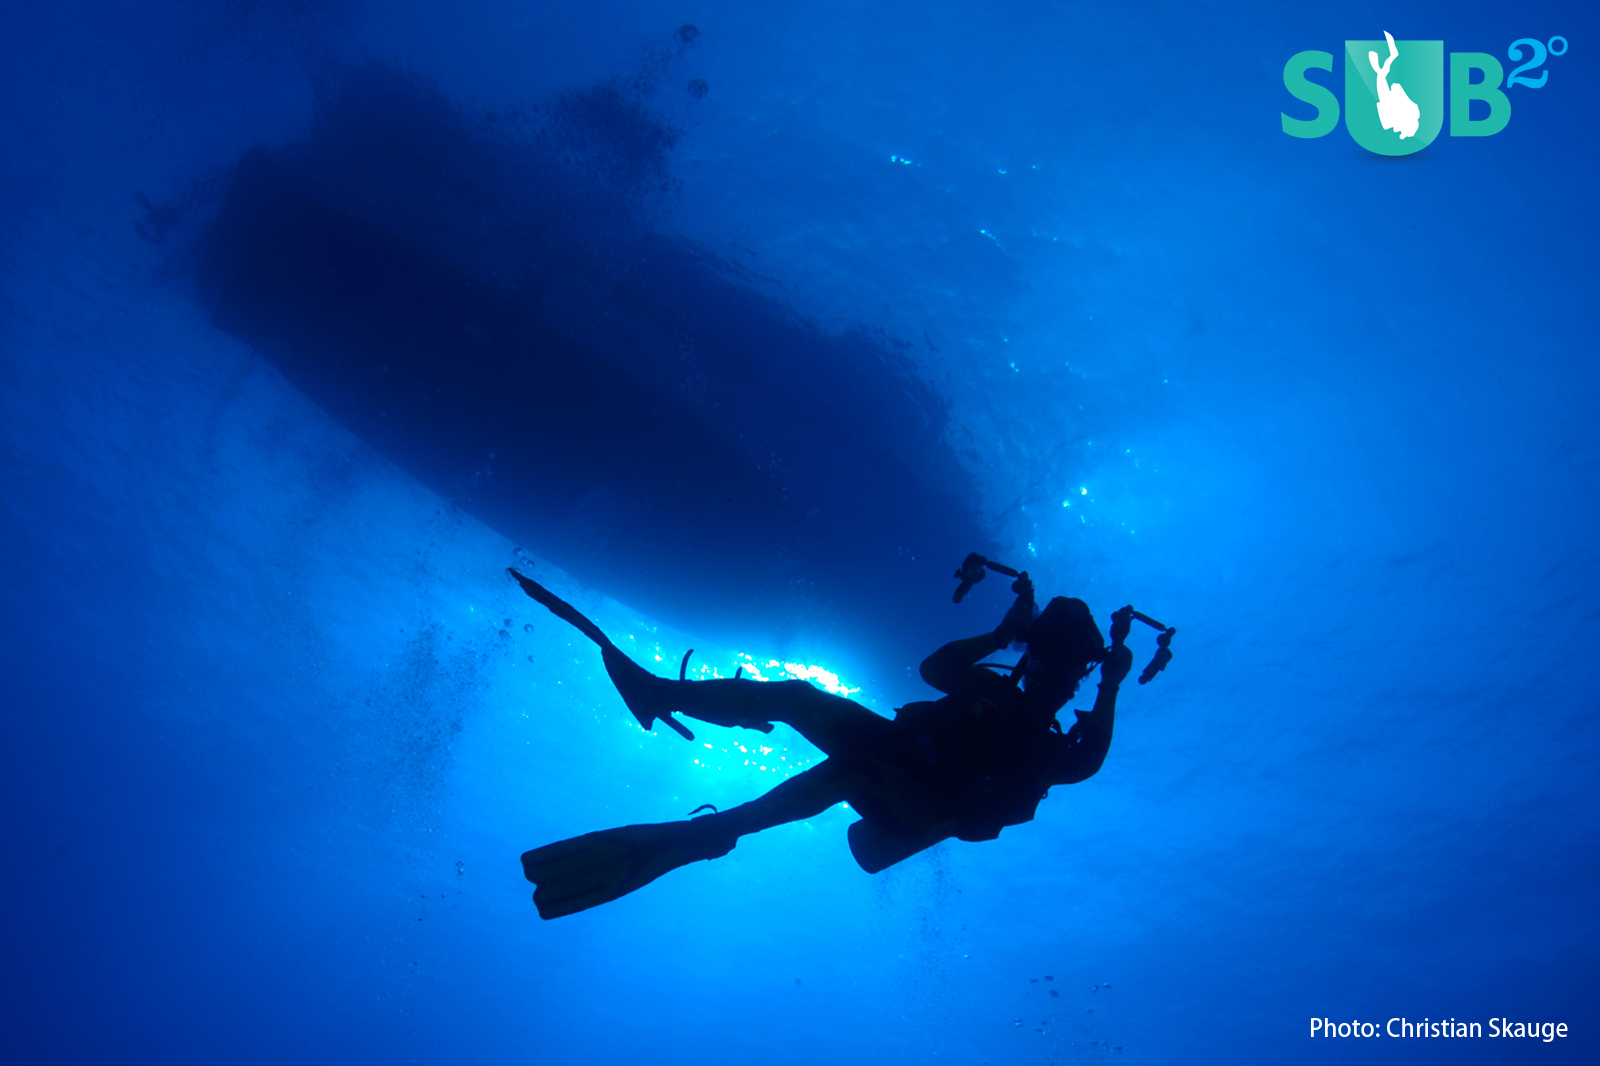 A diver in perfect silhouette against the blue water, with the dive boat at the surface.